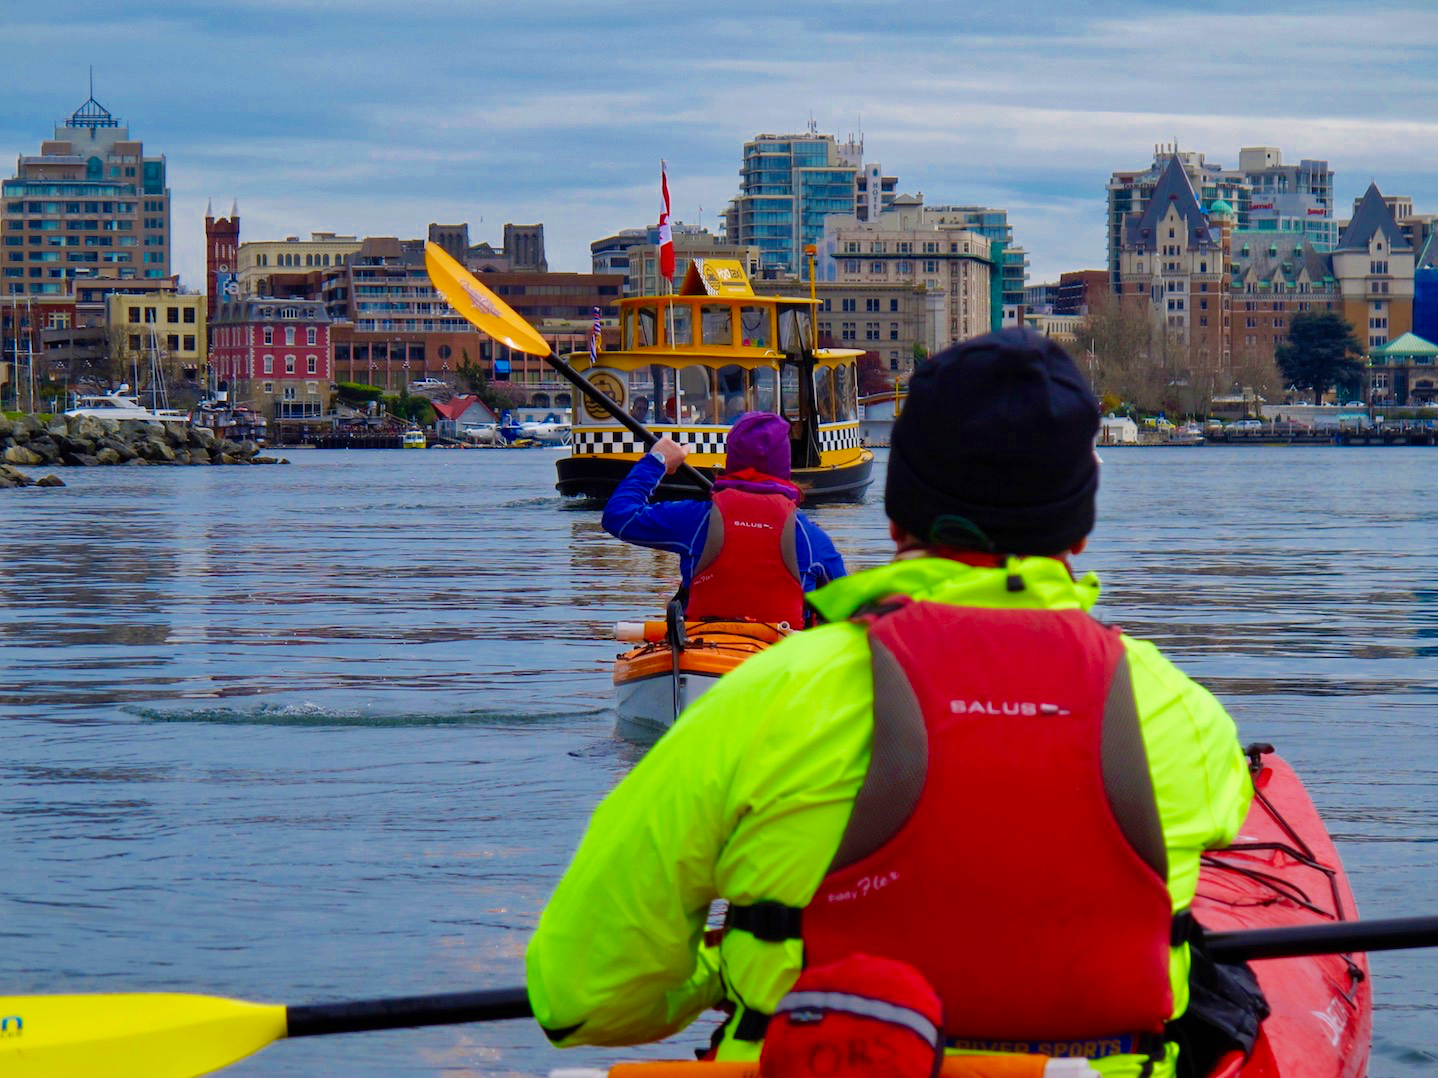 Historic buildings, and lots of boat activity make the harbour an interesting